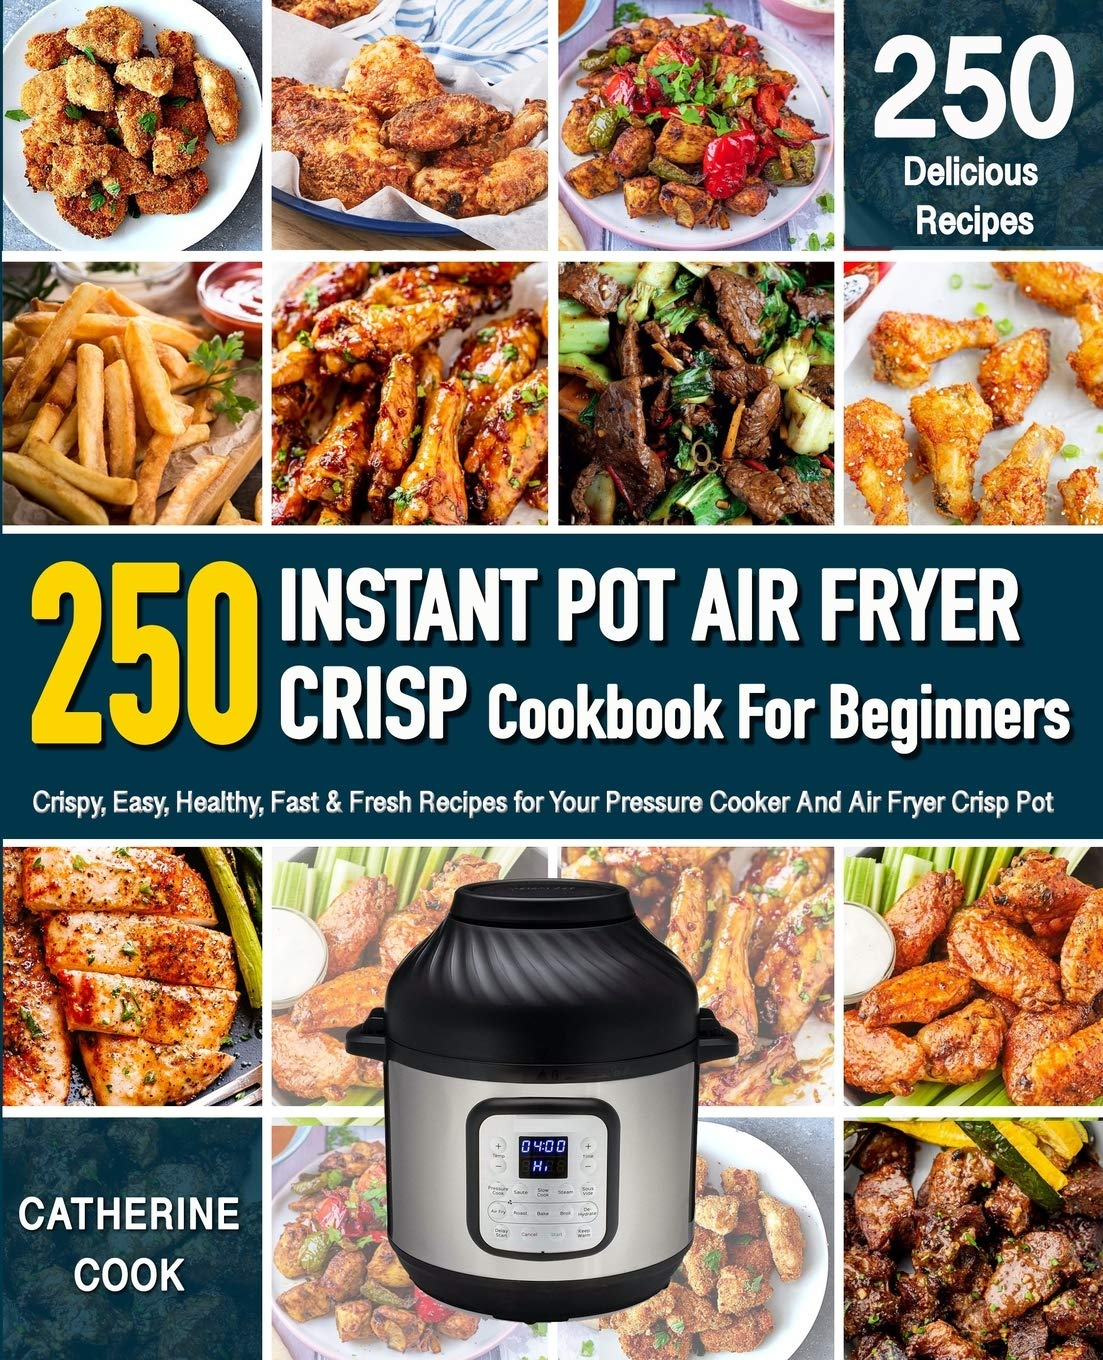 Instant Pot Air Fryer Crisp Cookbook For Beginners Crispy Easy Healthy Fast Fresh Recipes For Your Pressure Cooker And Air Fryer Crisp Pot Recipe Book Cook Catherine 9781707194797 Amazon Com Books